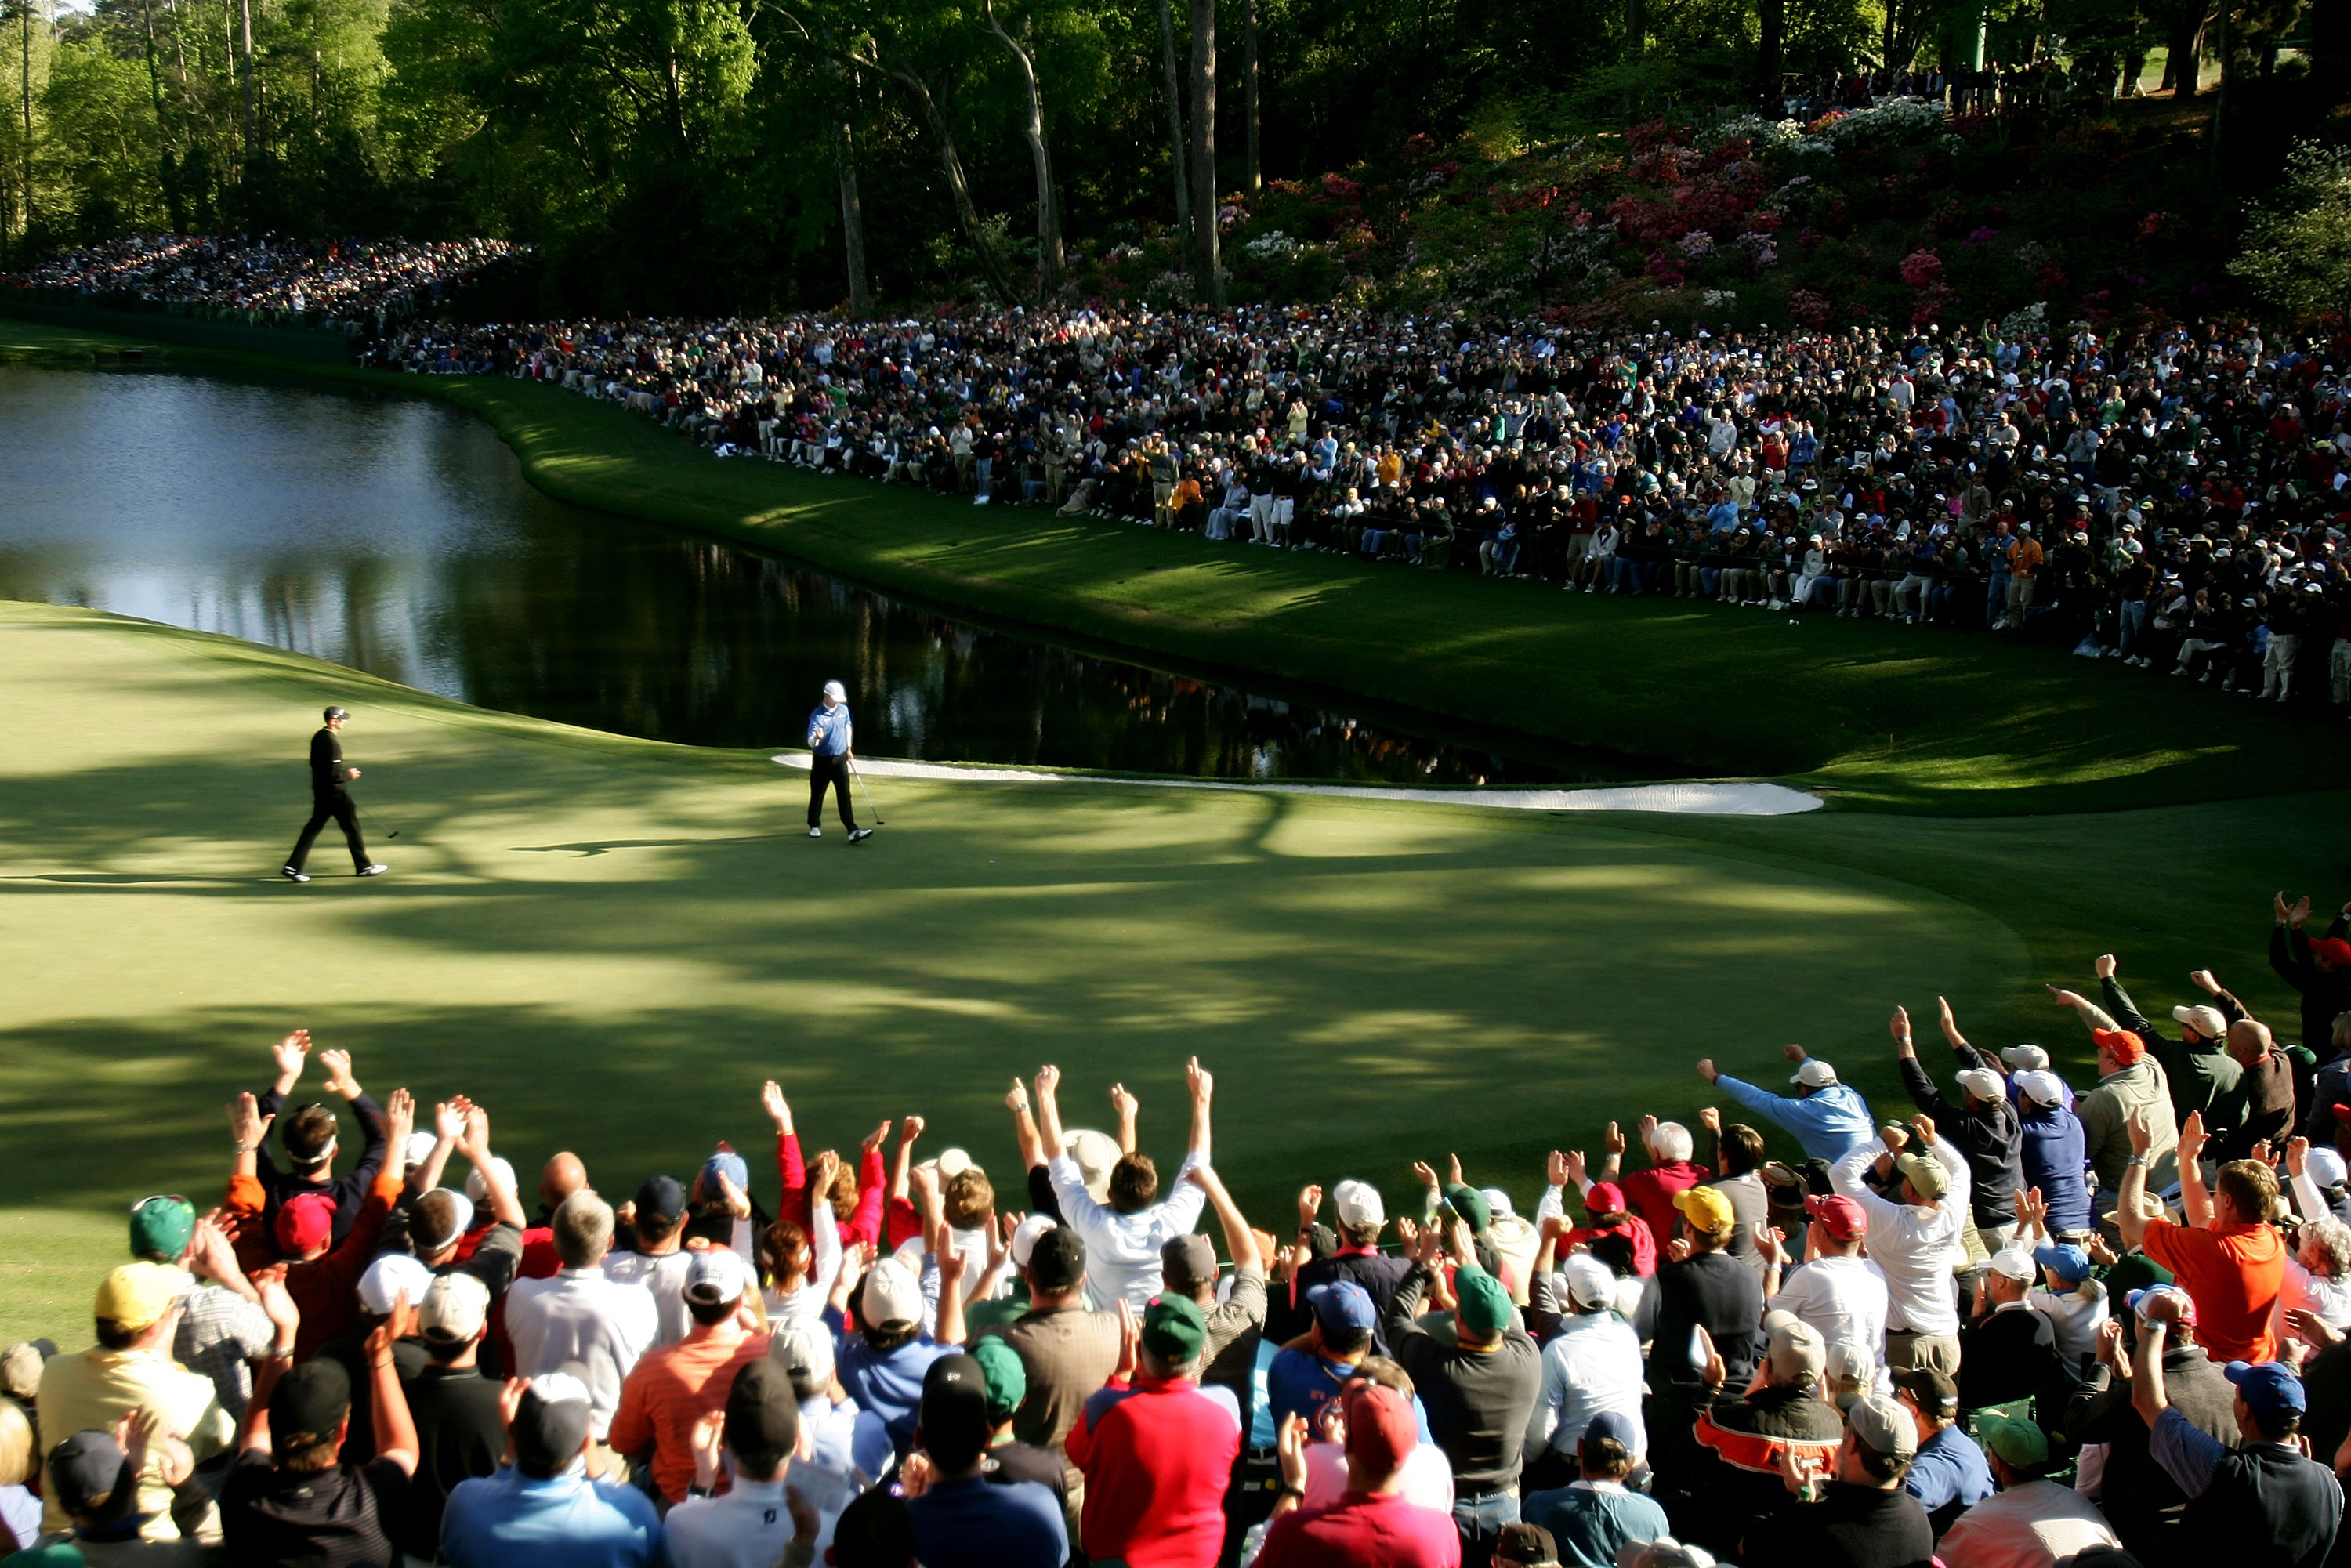 AUGUSTA, GA - APRIL 08:  Zach Johnson celebrates his birdie putt on the 16th green during the final round of The Masters at the Augusta National Golf Club on April 8, 2007 in Augusta, Georgia.  (Photo by David Cannon/Getty Images)